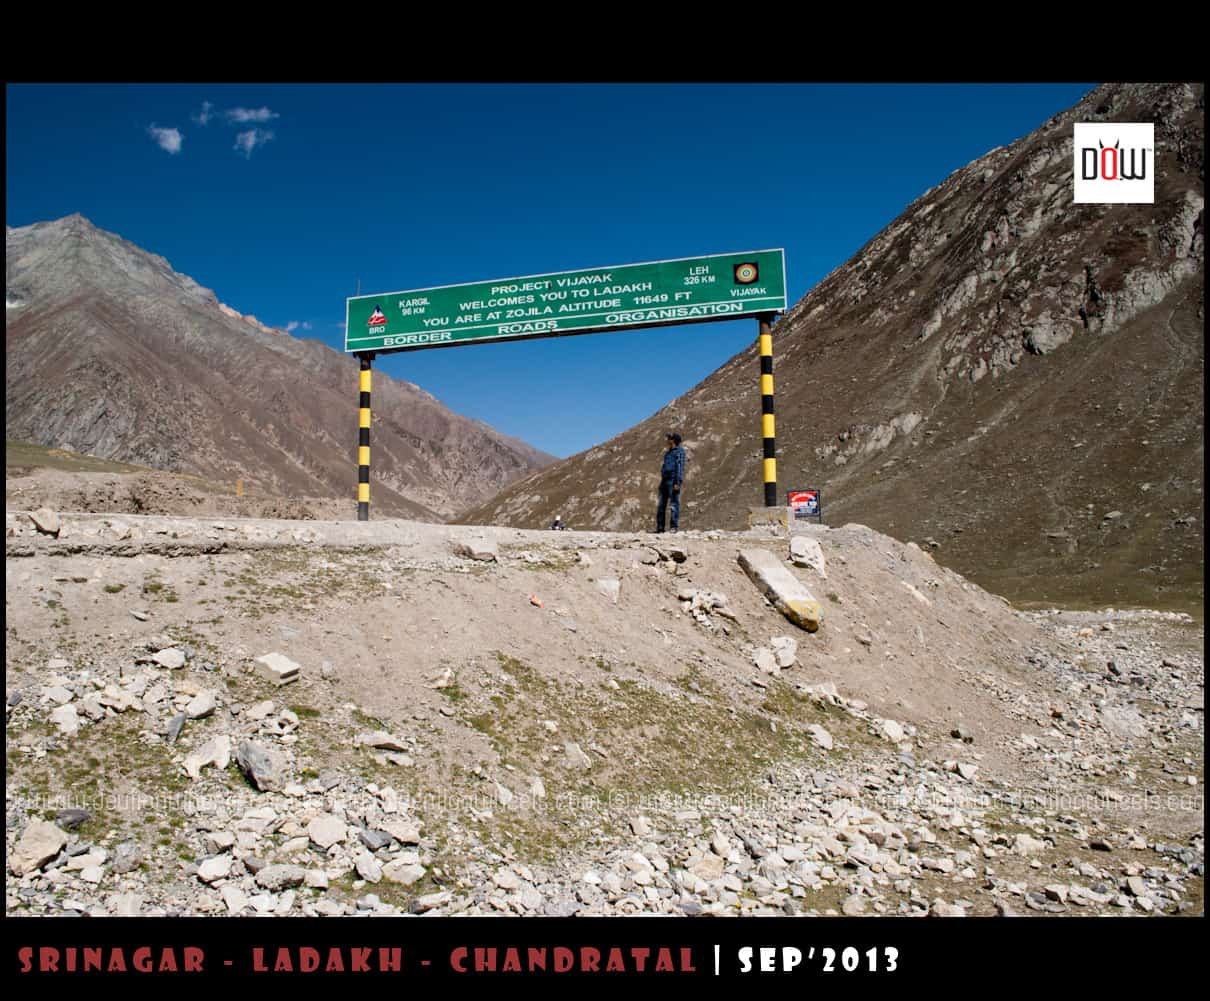 Preview – 17 High Mountain Passes | Ladakh Mega Meet